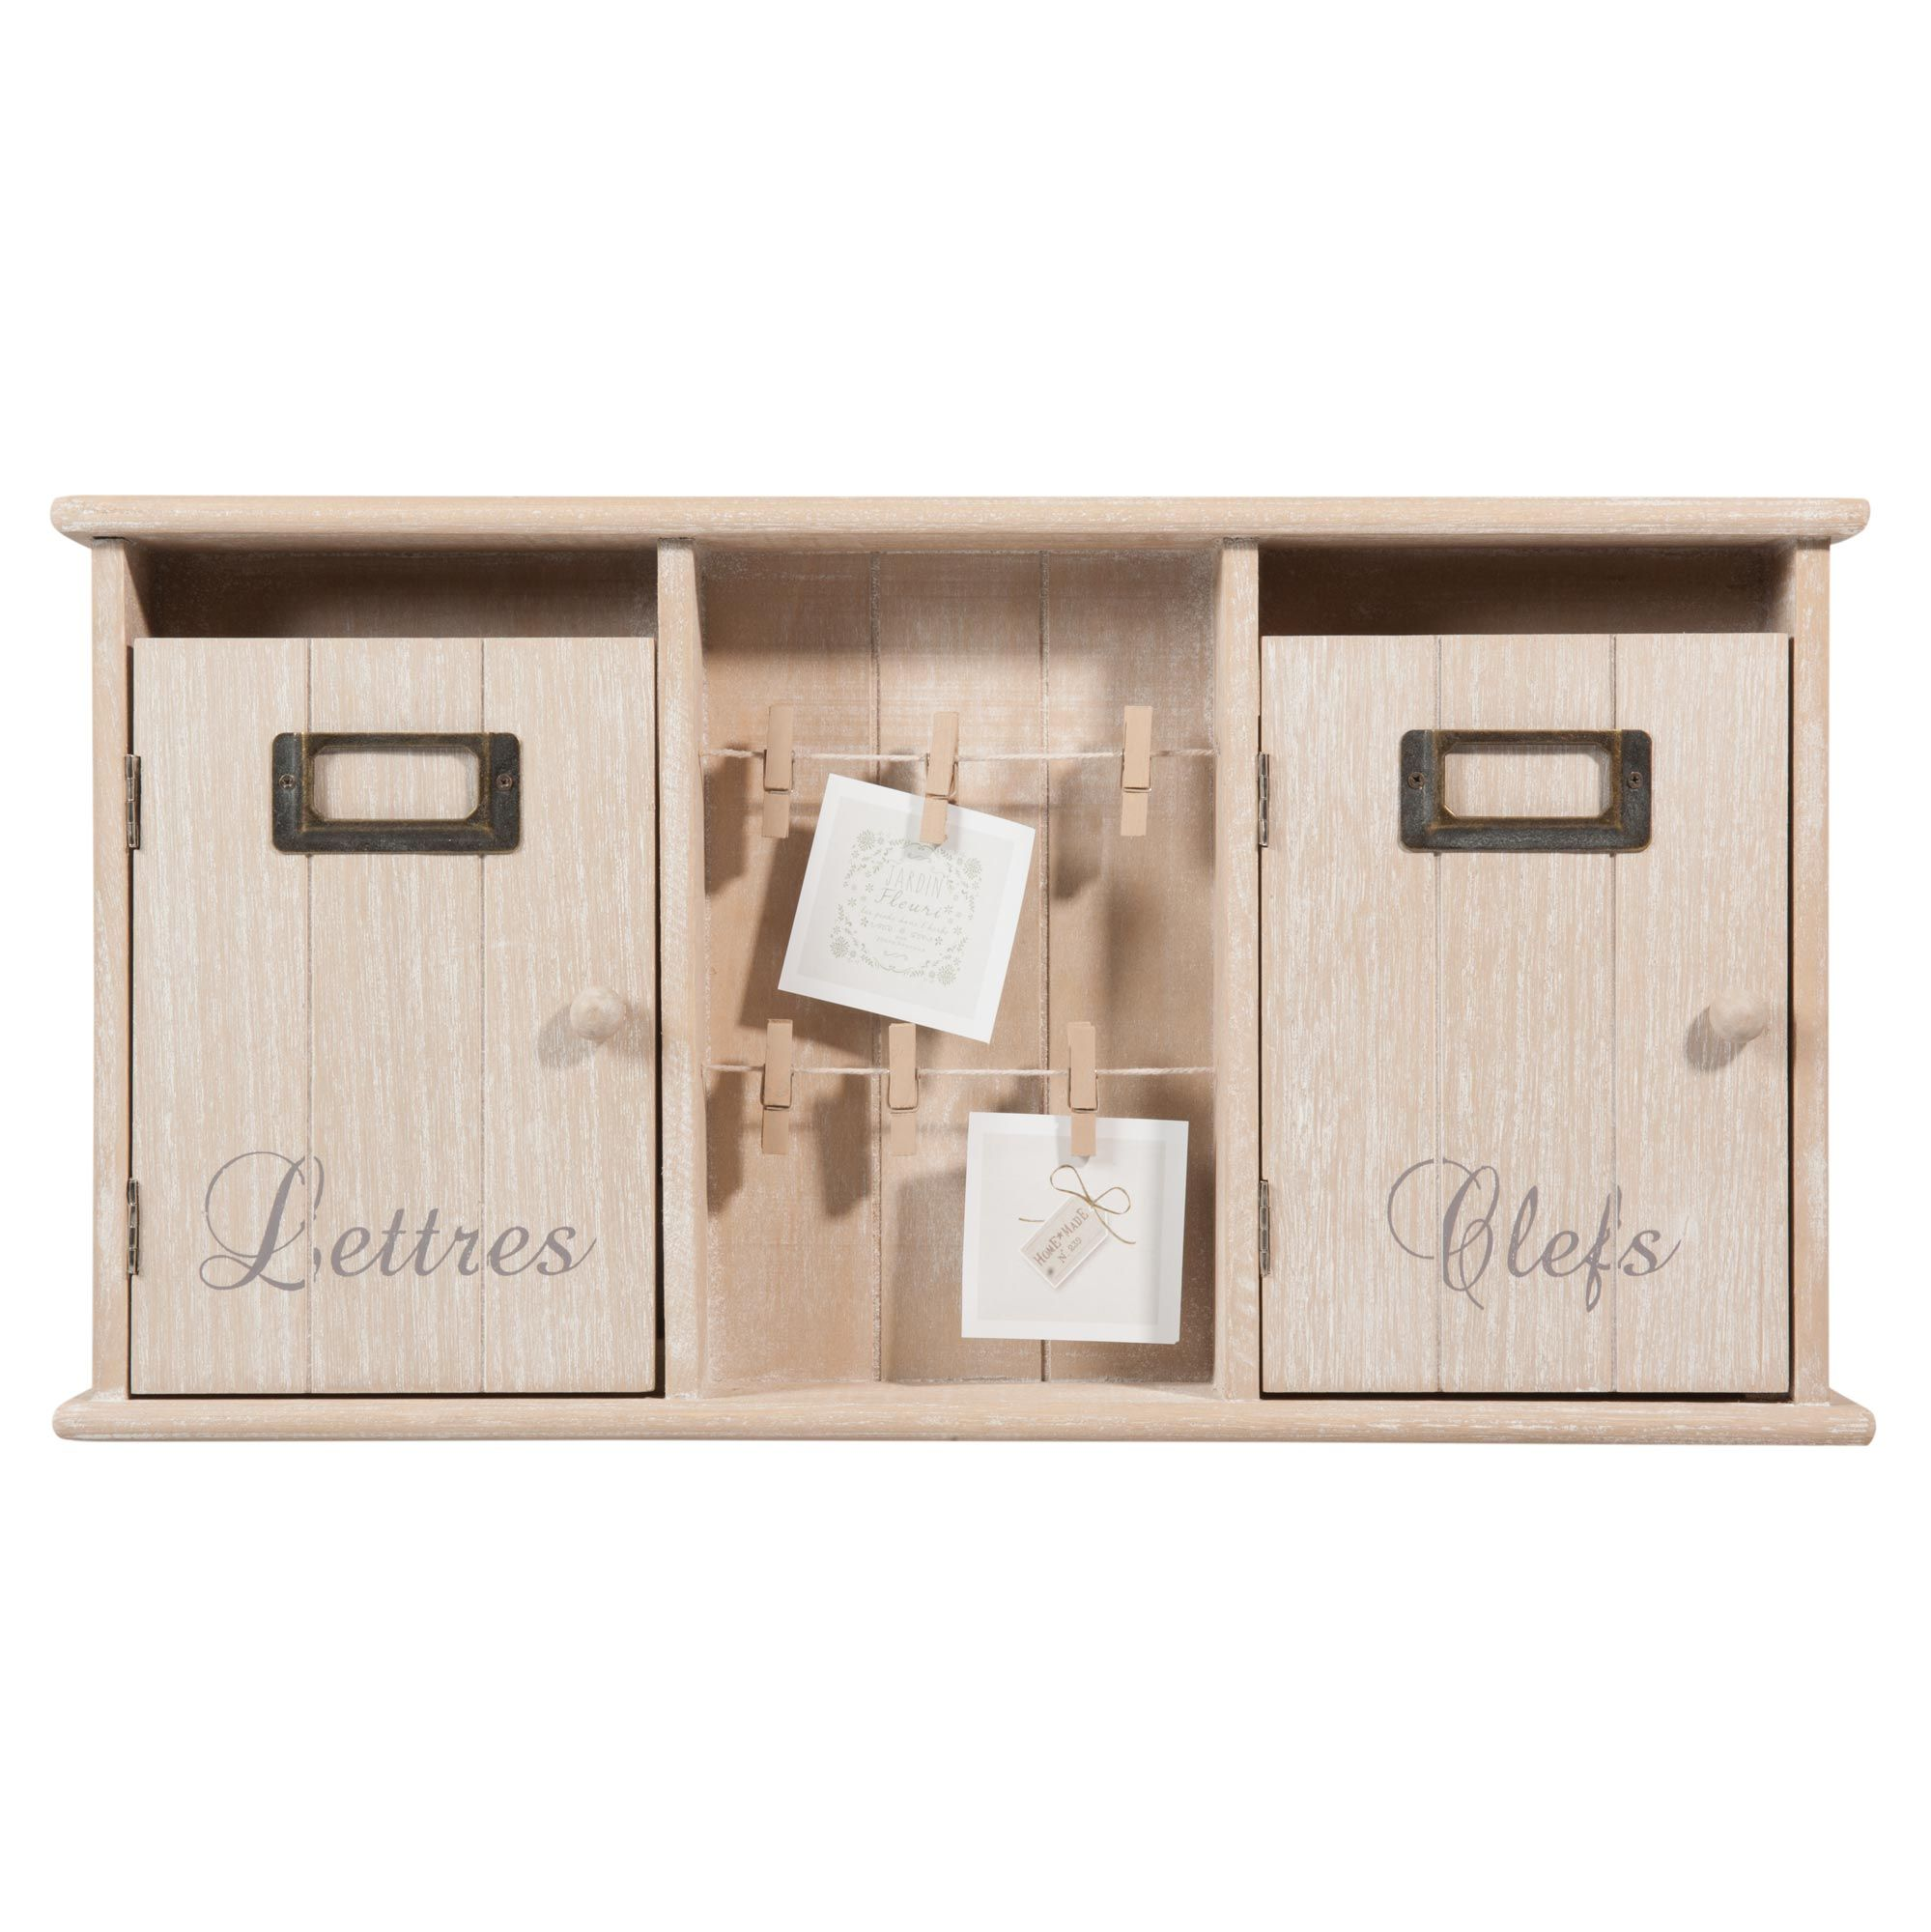 bo te cl s courrier en bois brocante maisons du. Black Bedroom Furniture Sets. Home Design Ideas